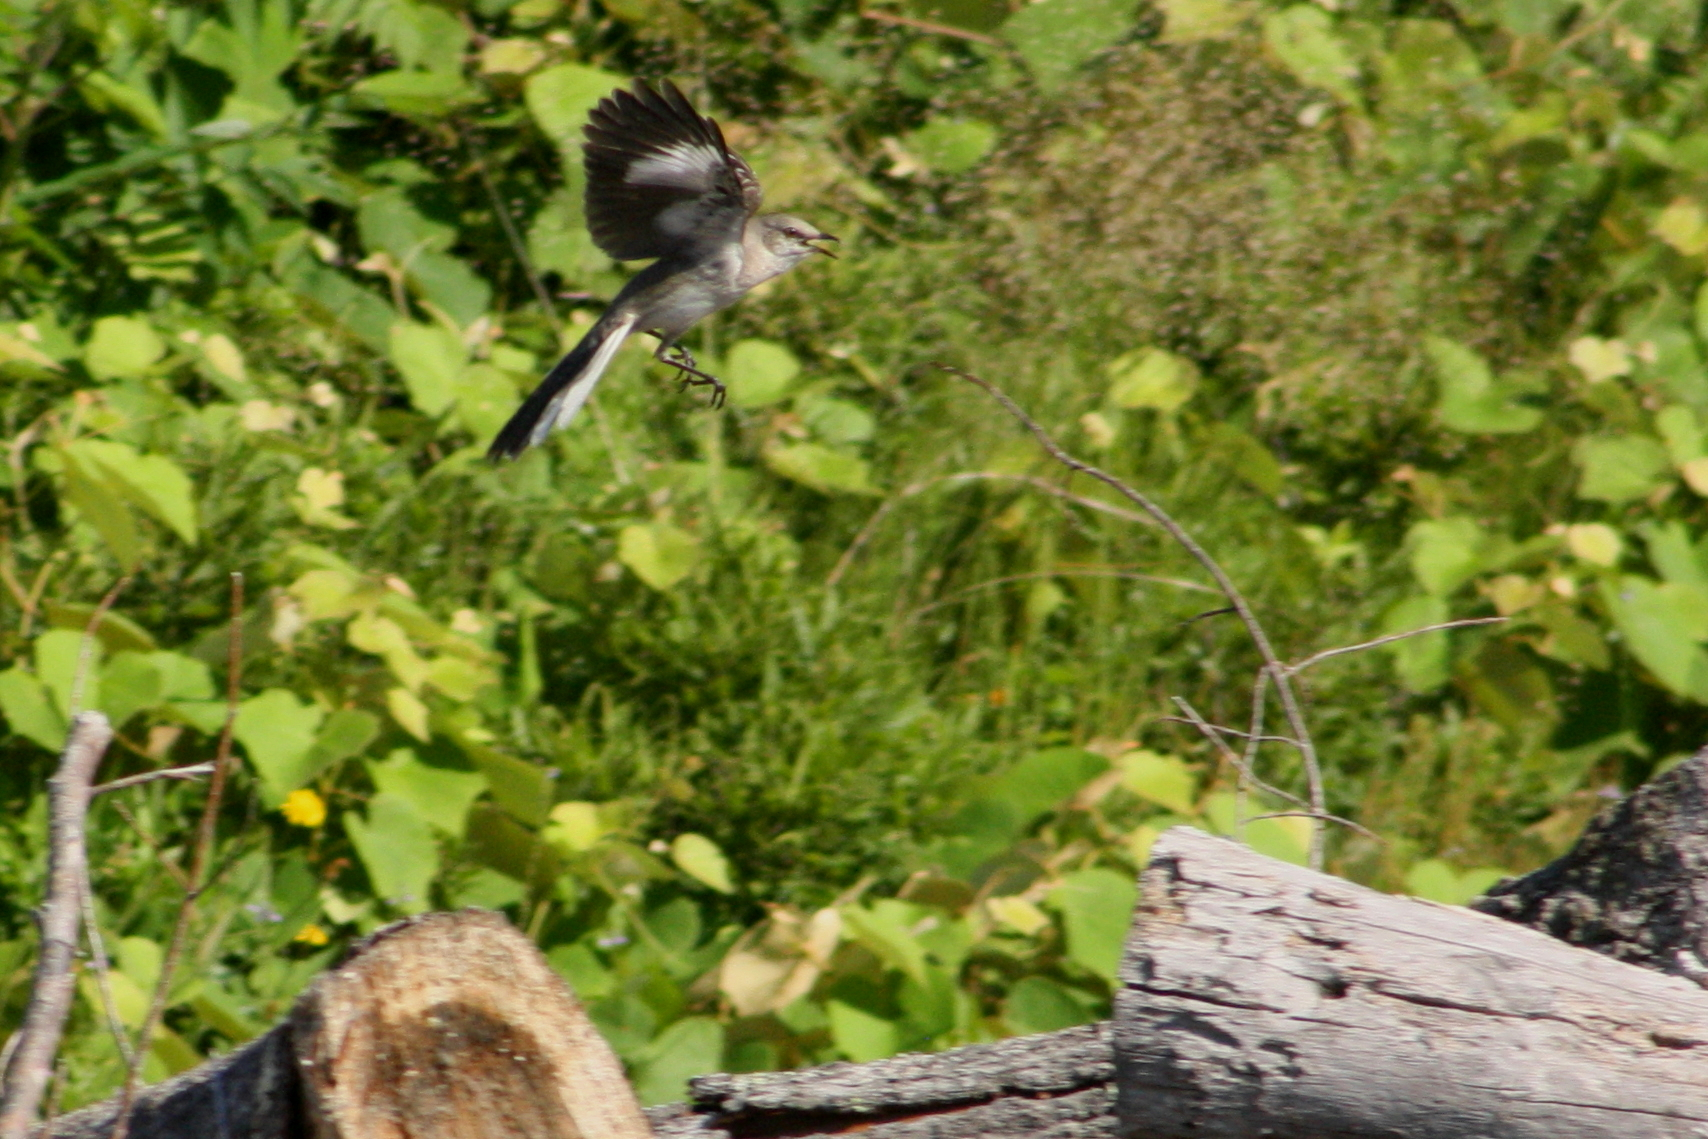 2017_06_25_northern mockingbird_img_6518_cr_cjackson.jpg